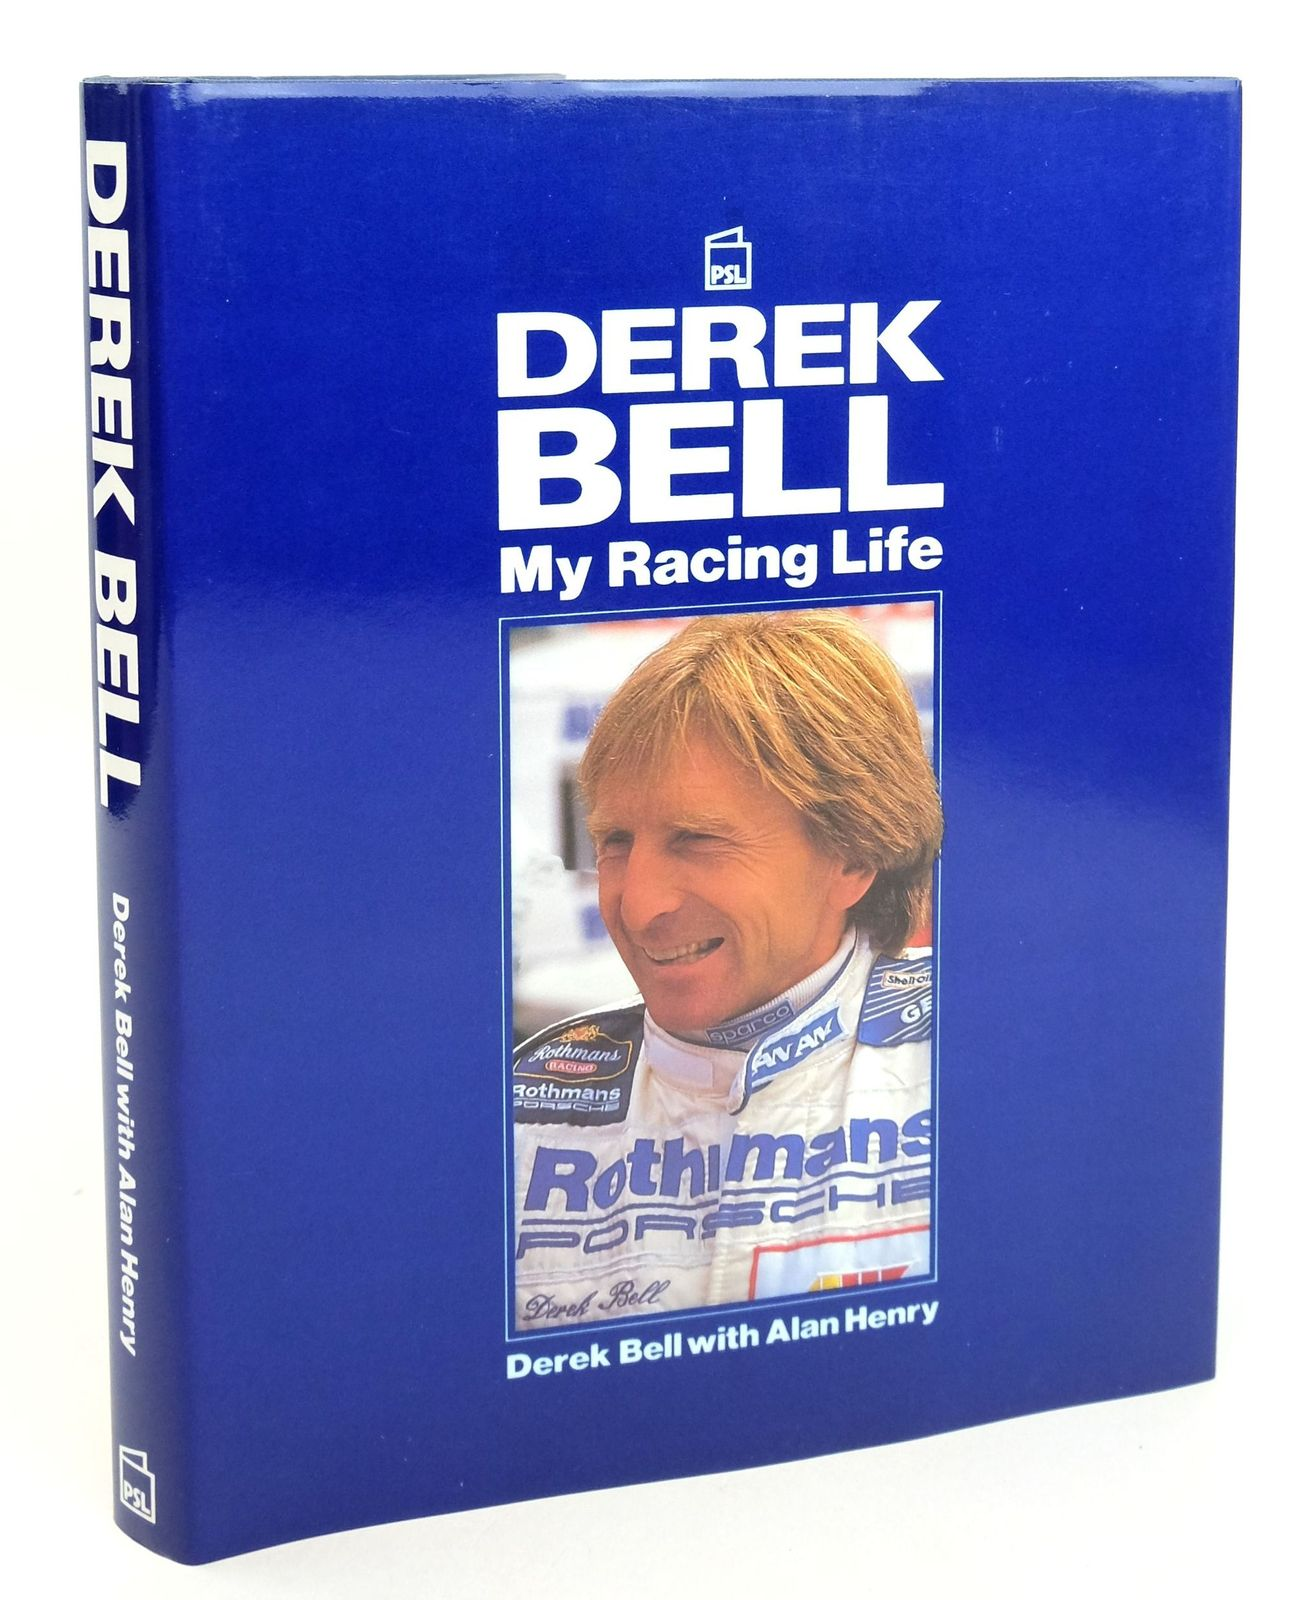 Photo of DEREK BELL MY RACING LIFE written by Bell, Derek published by Patrick Stephens (STOCK CODE: 1819341)  for sale by Stella & Rose's Books